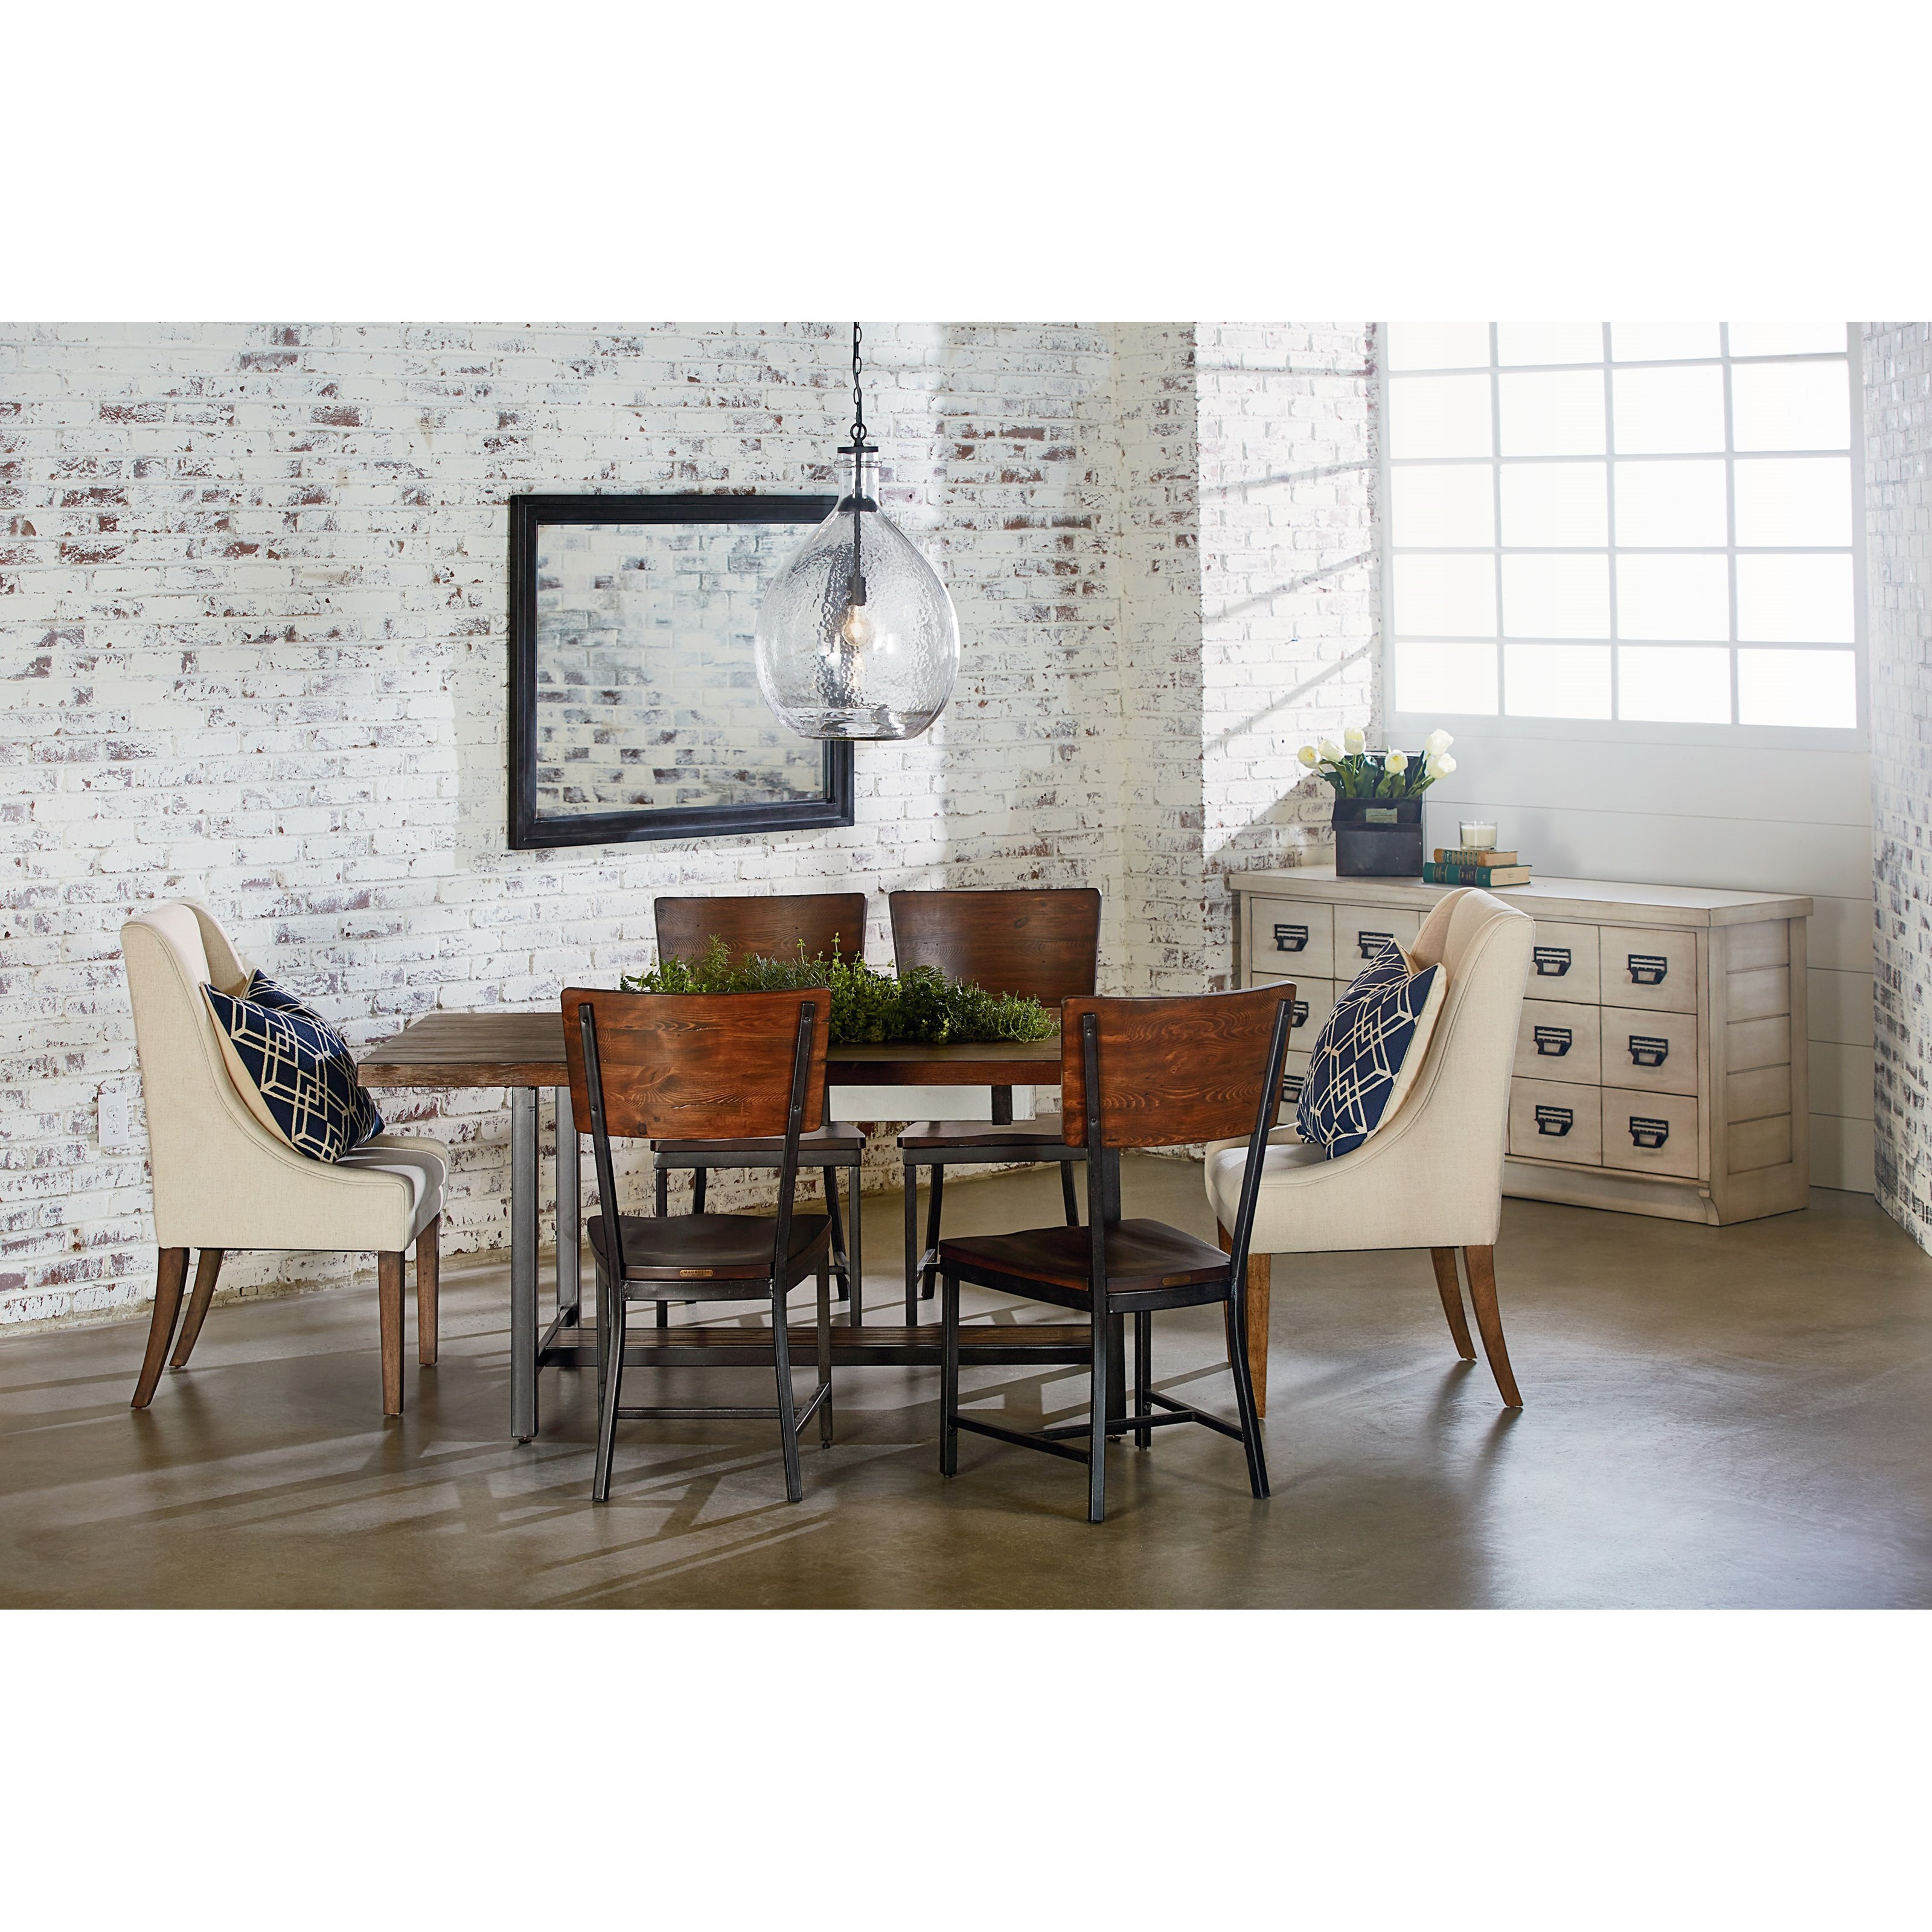 Magnolia Home by Joanna Gaines Industrial Industrial Dining ...